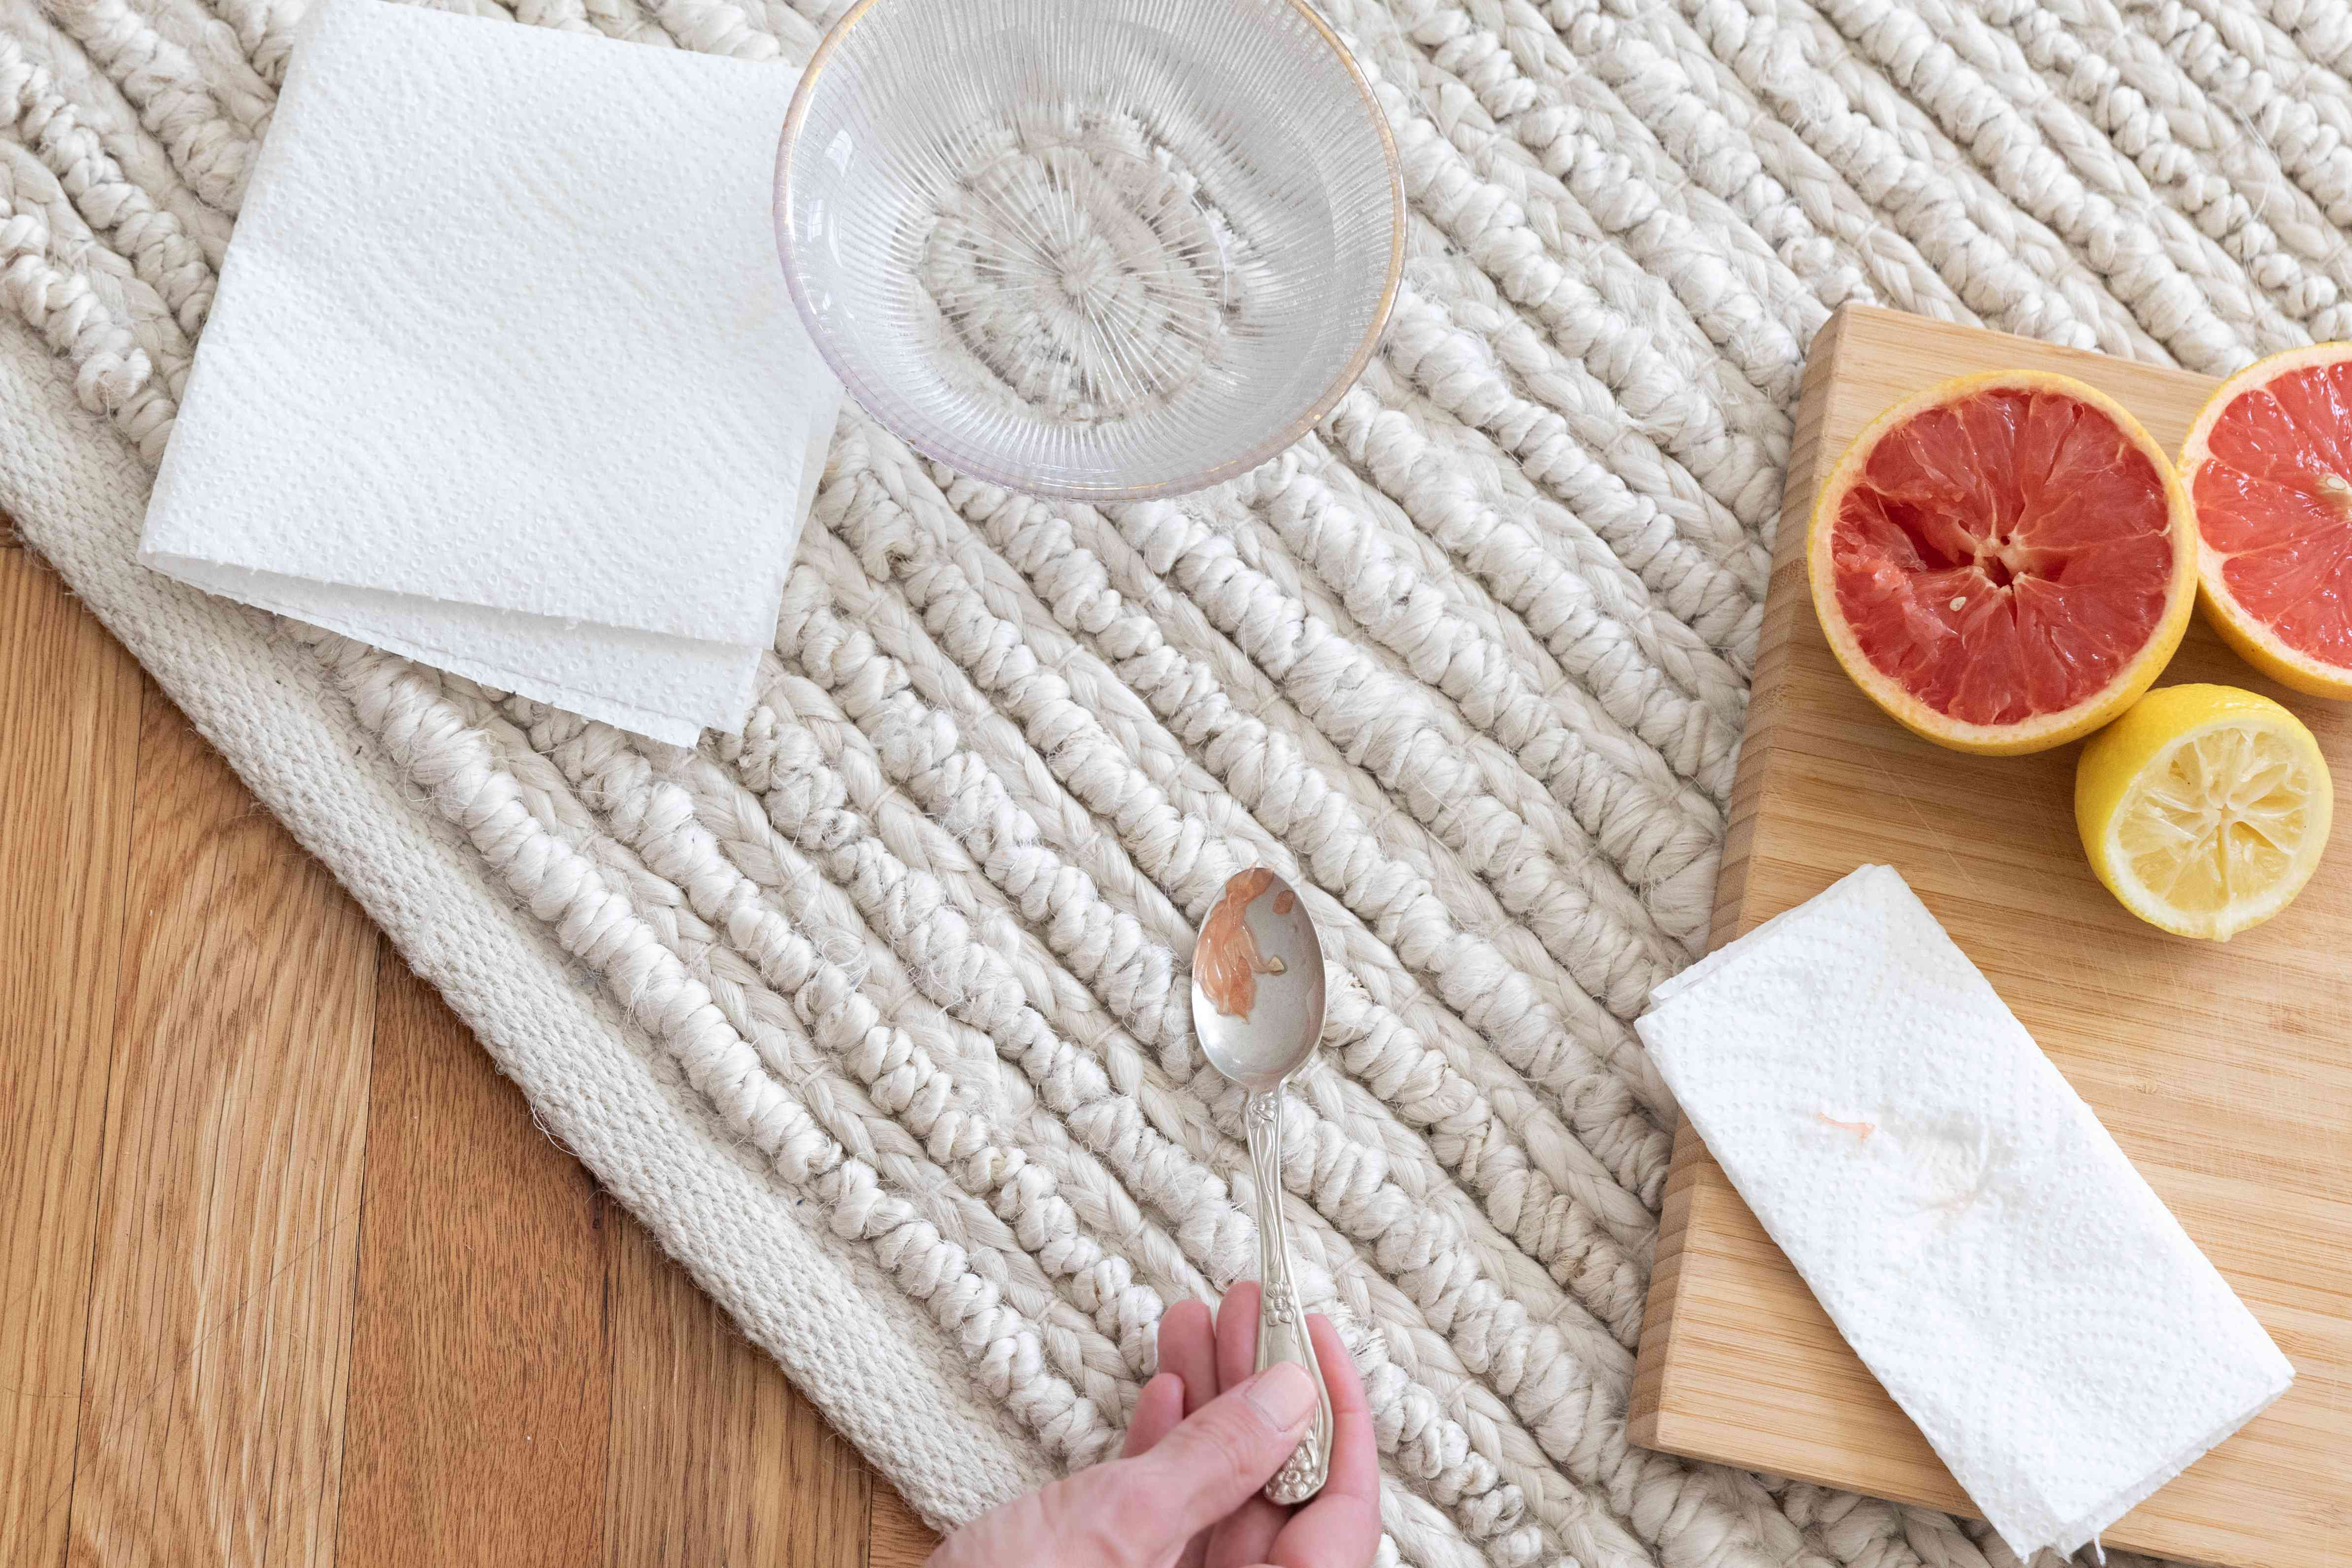 Citrus pulp solid removed from carpet with silver spoon next to folded paper towels and glass bowl